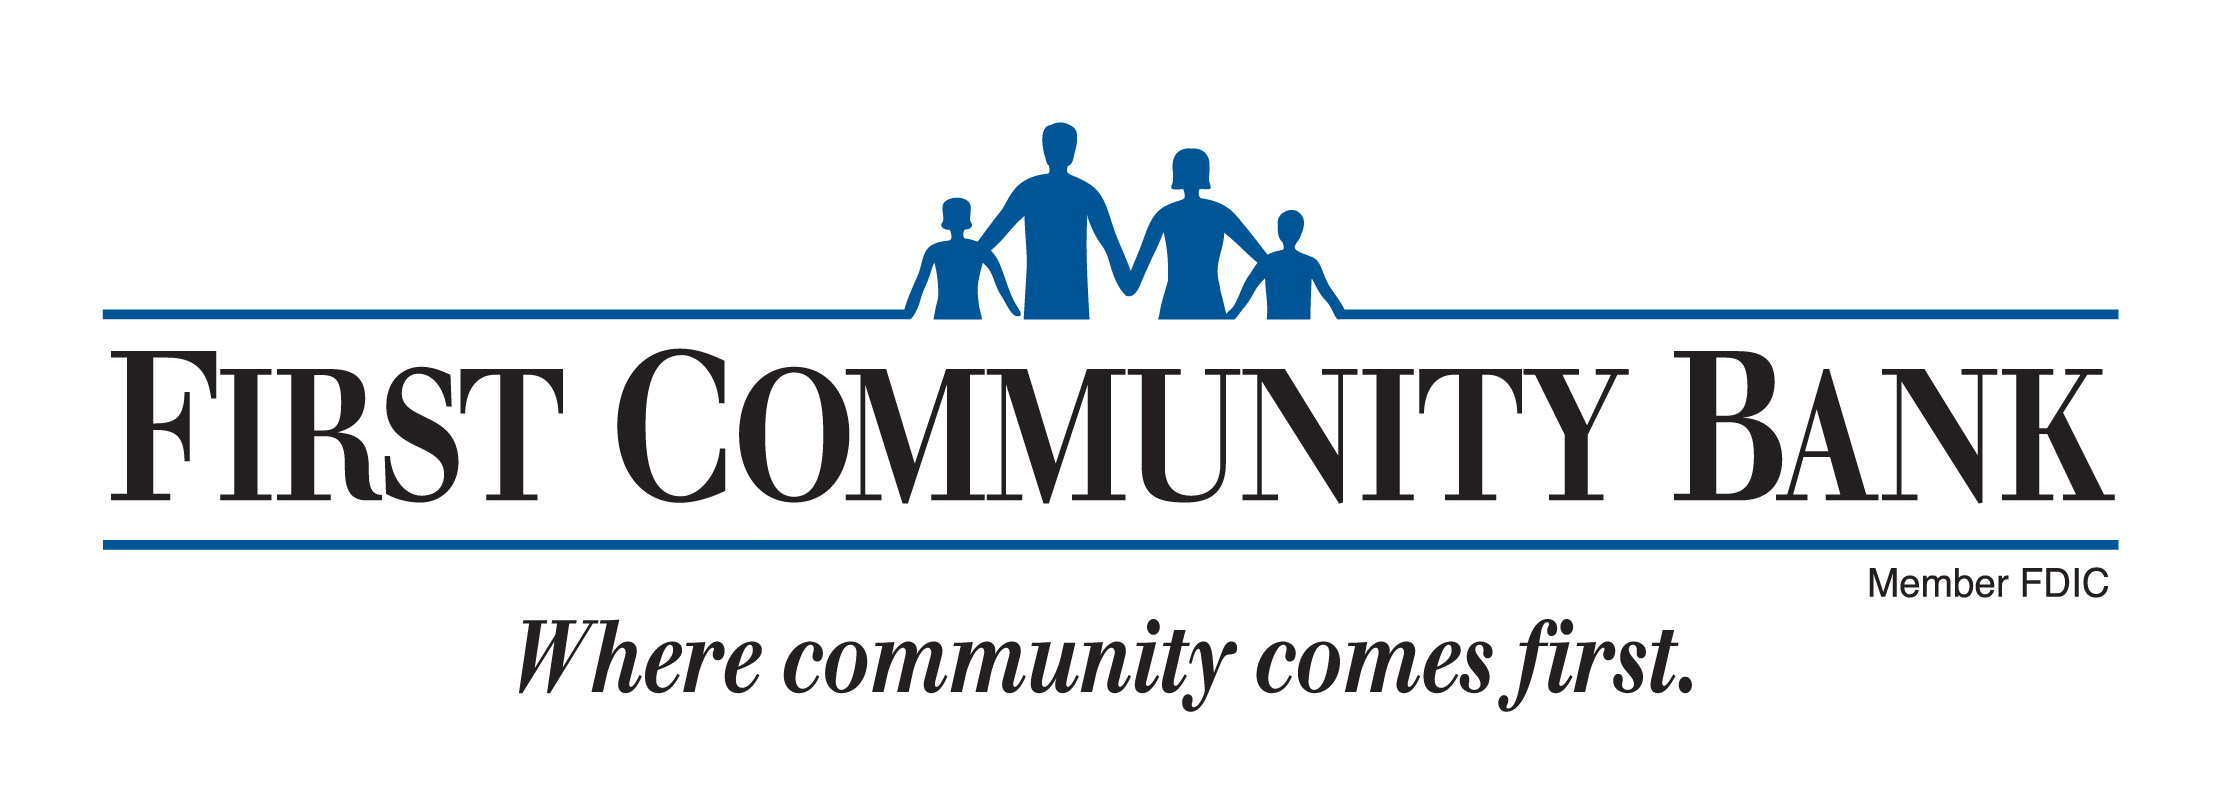 first-community-bank-logo-1 (1)